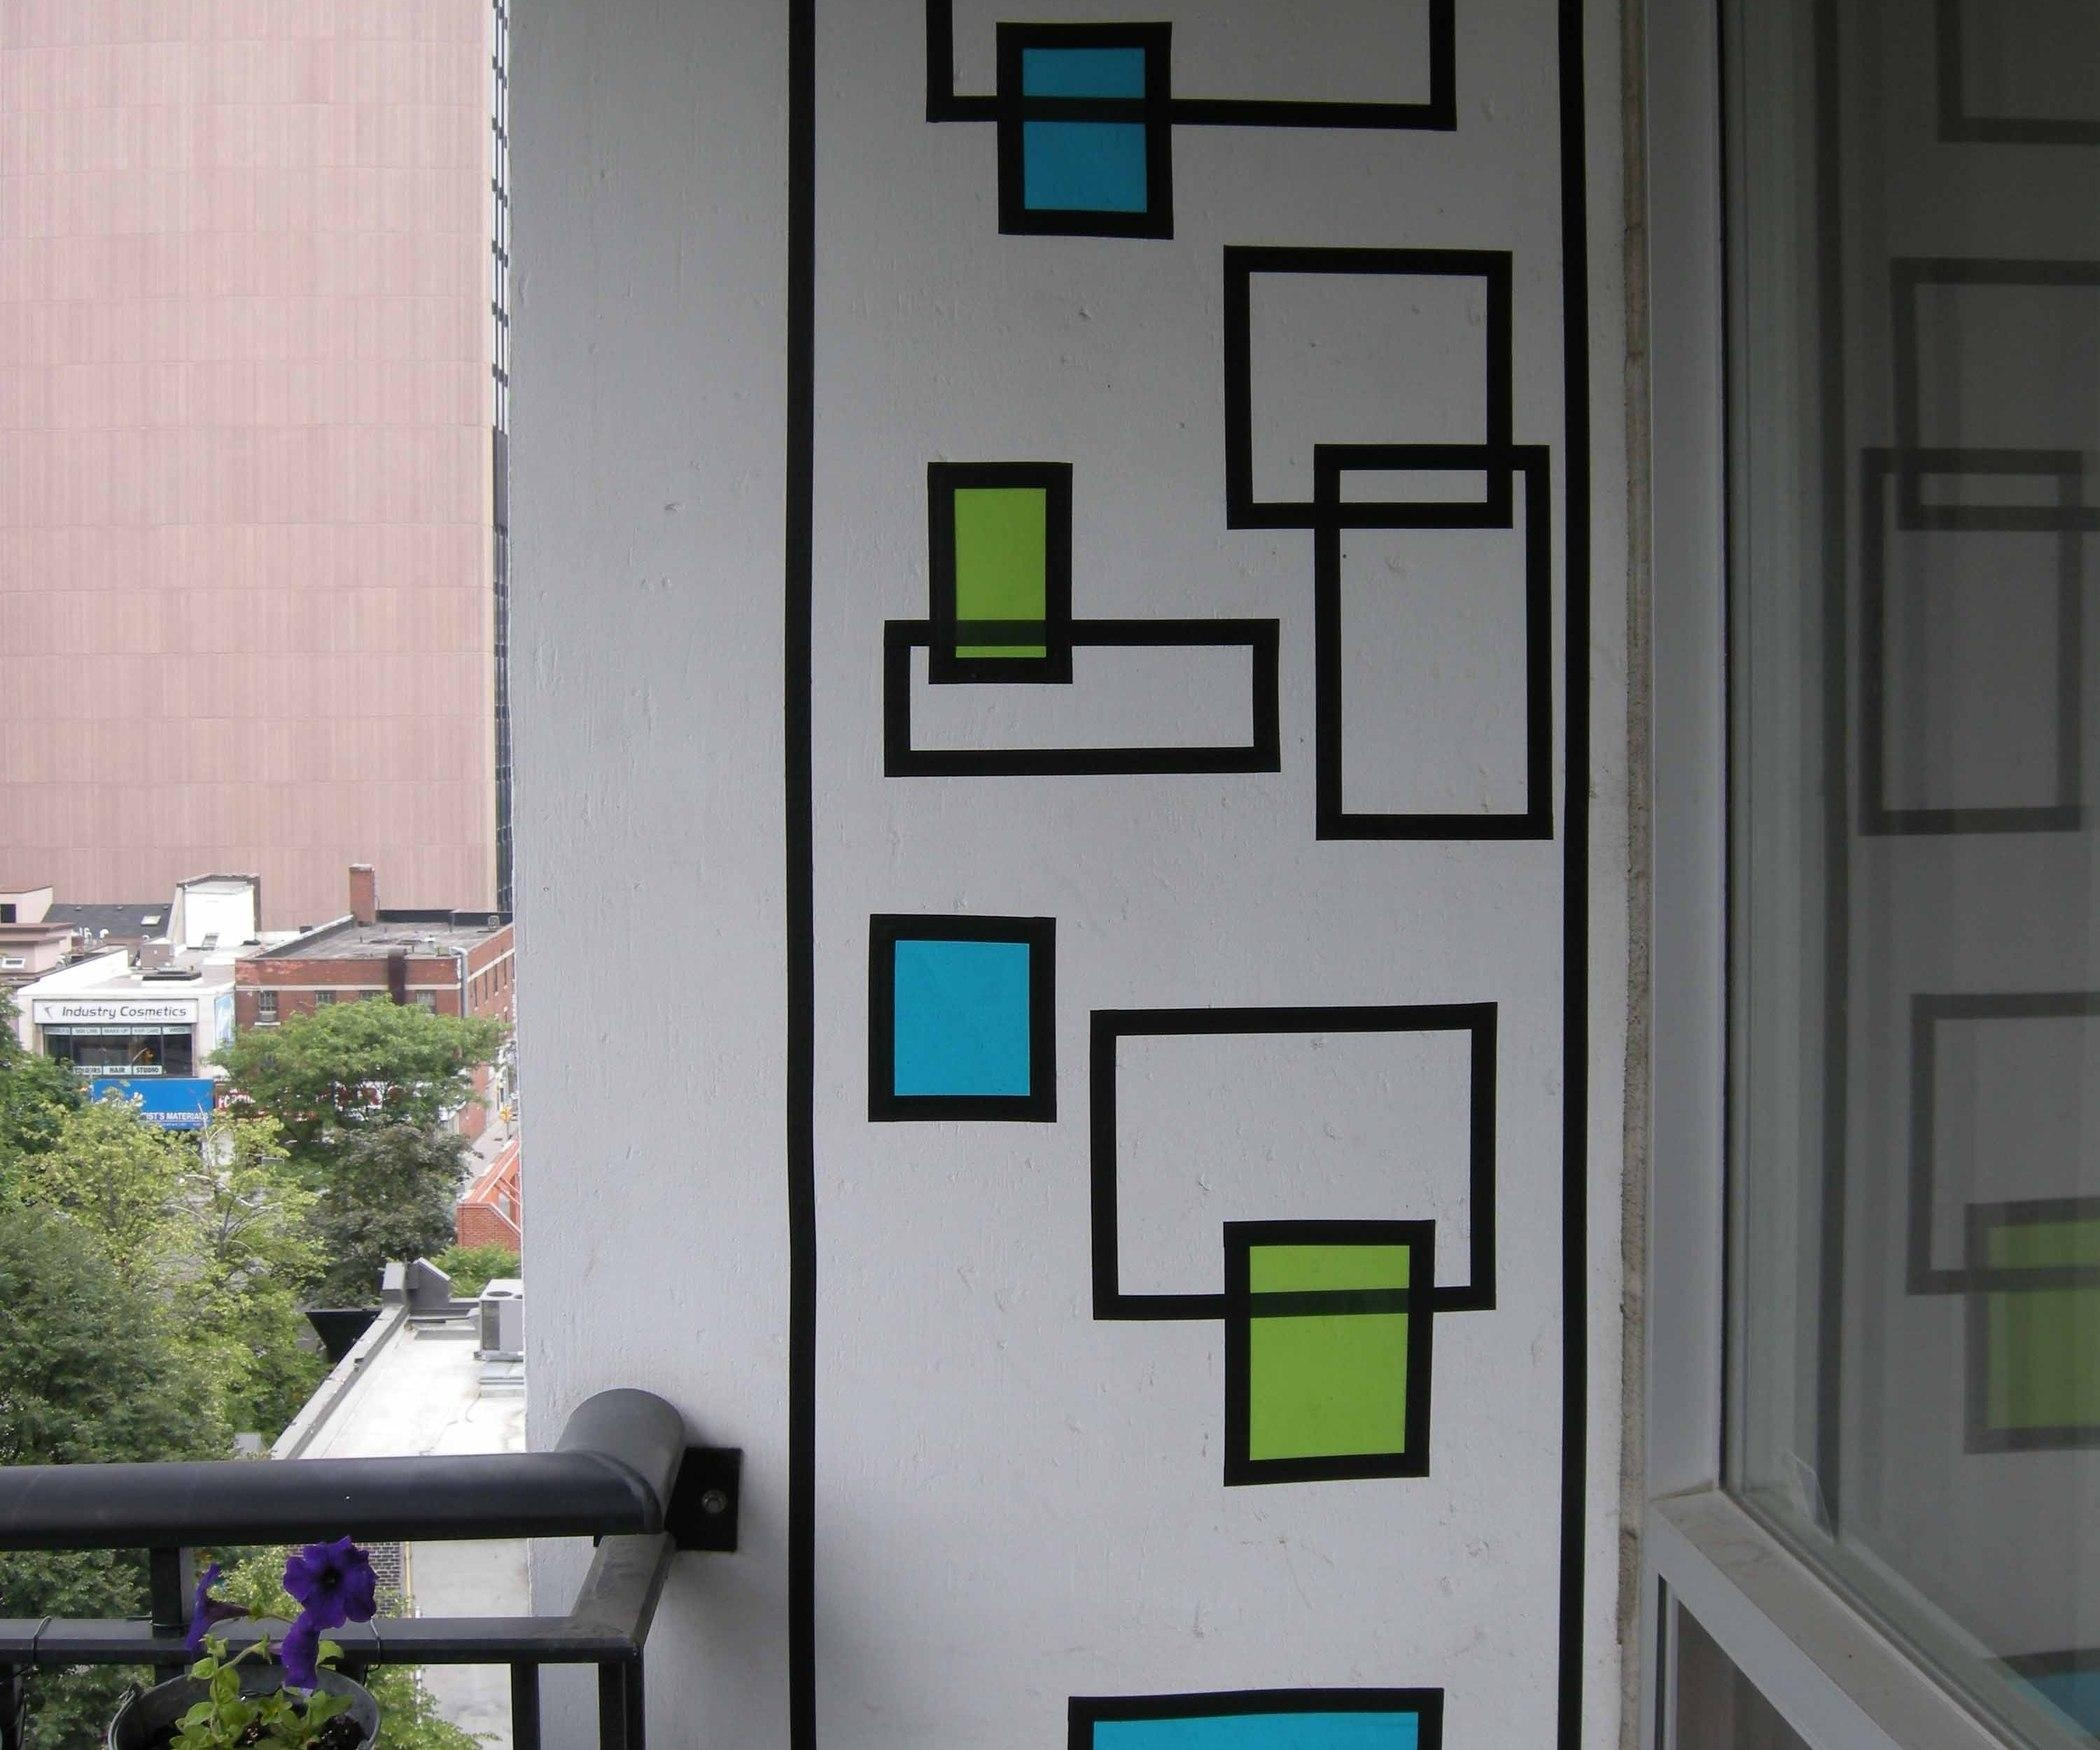 How To Create Wall Art With Electrical Tape: 6 Steps (With Pictures) Pertaining To Duct Tape Wall Art (Image 17 of 20)